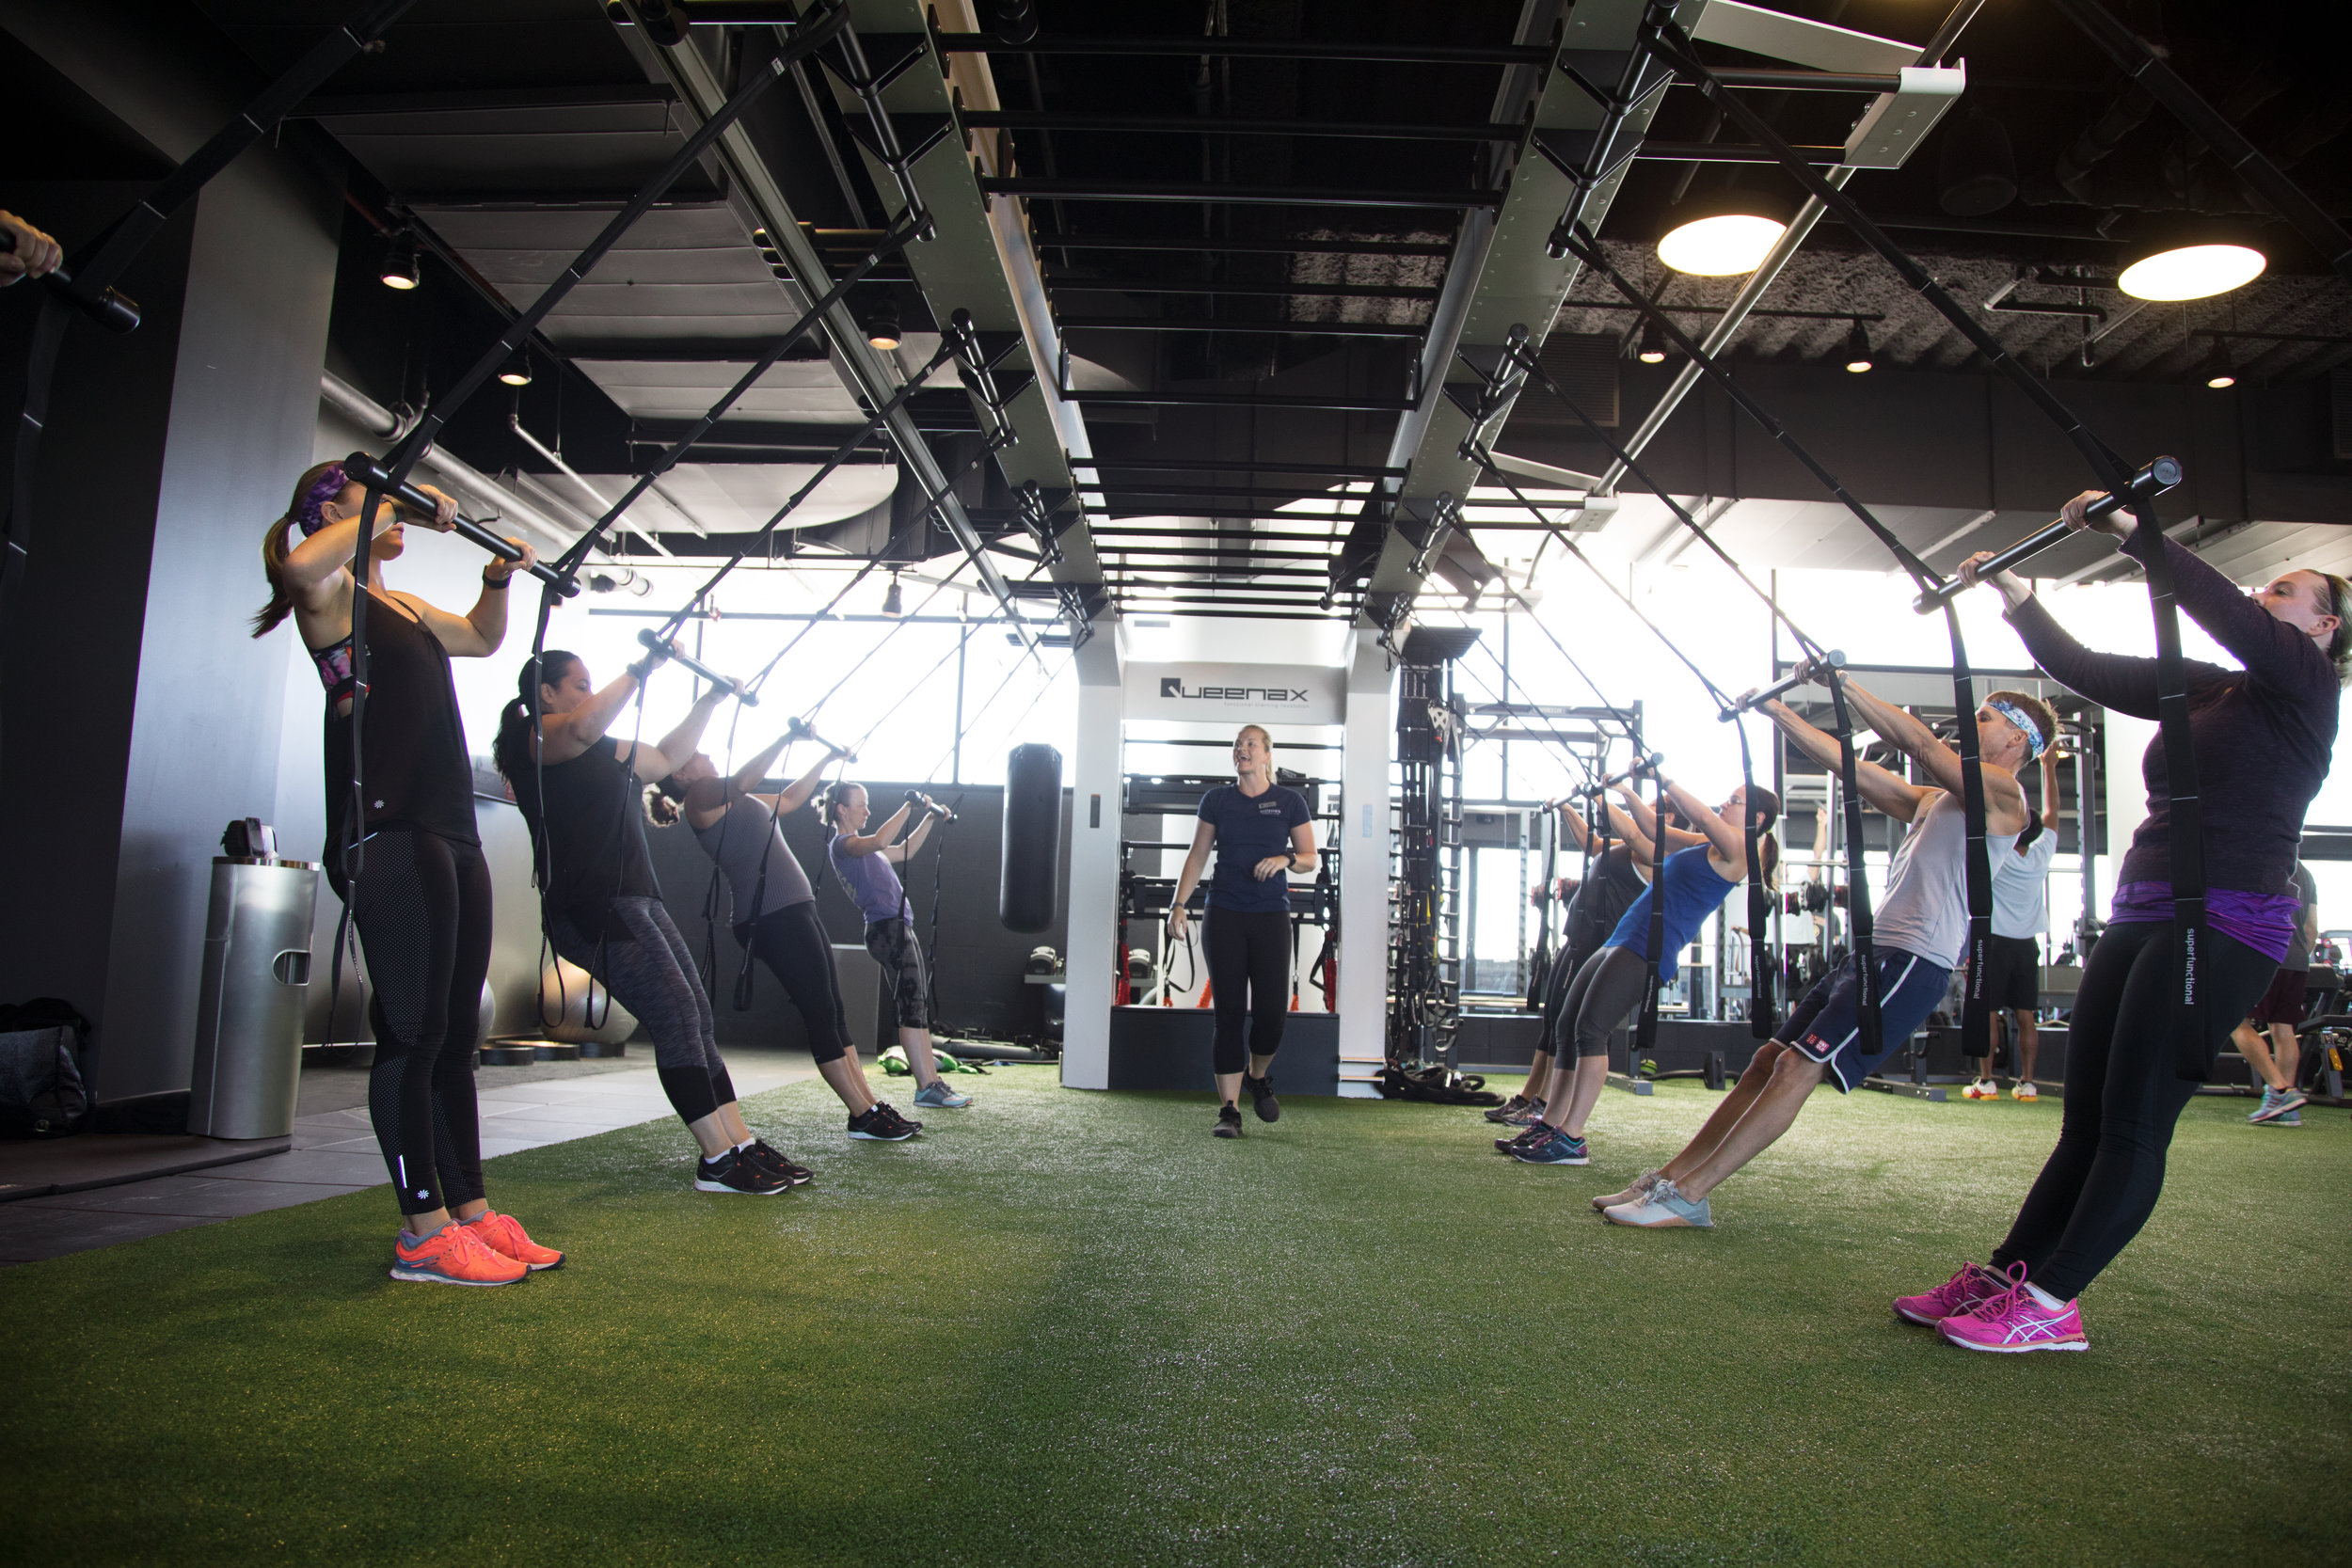 3.) Offer a fitness experience that sets your facility apart -